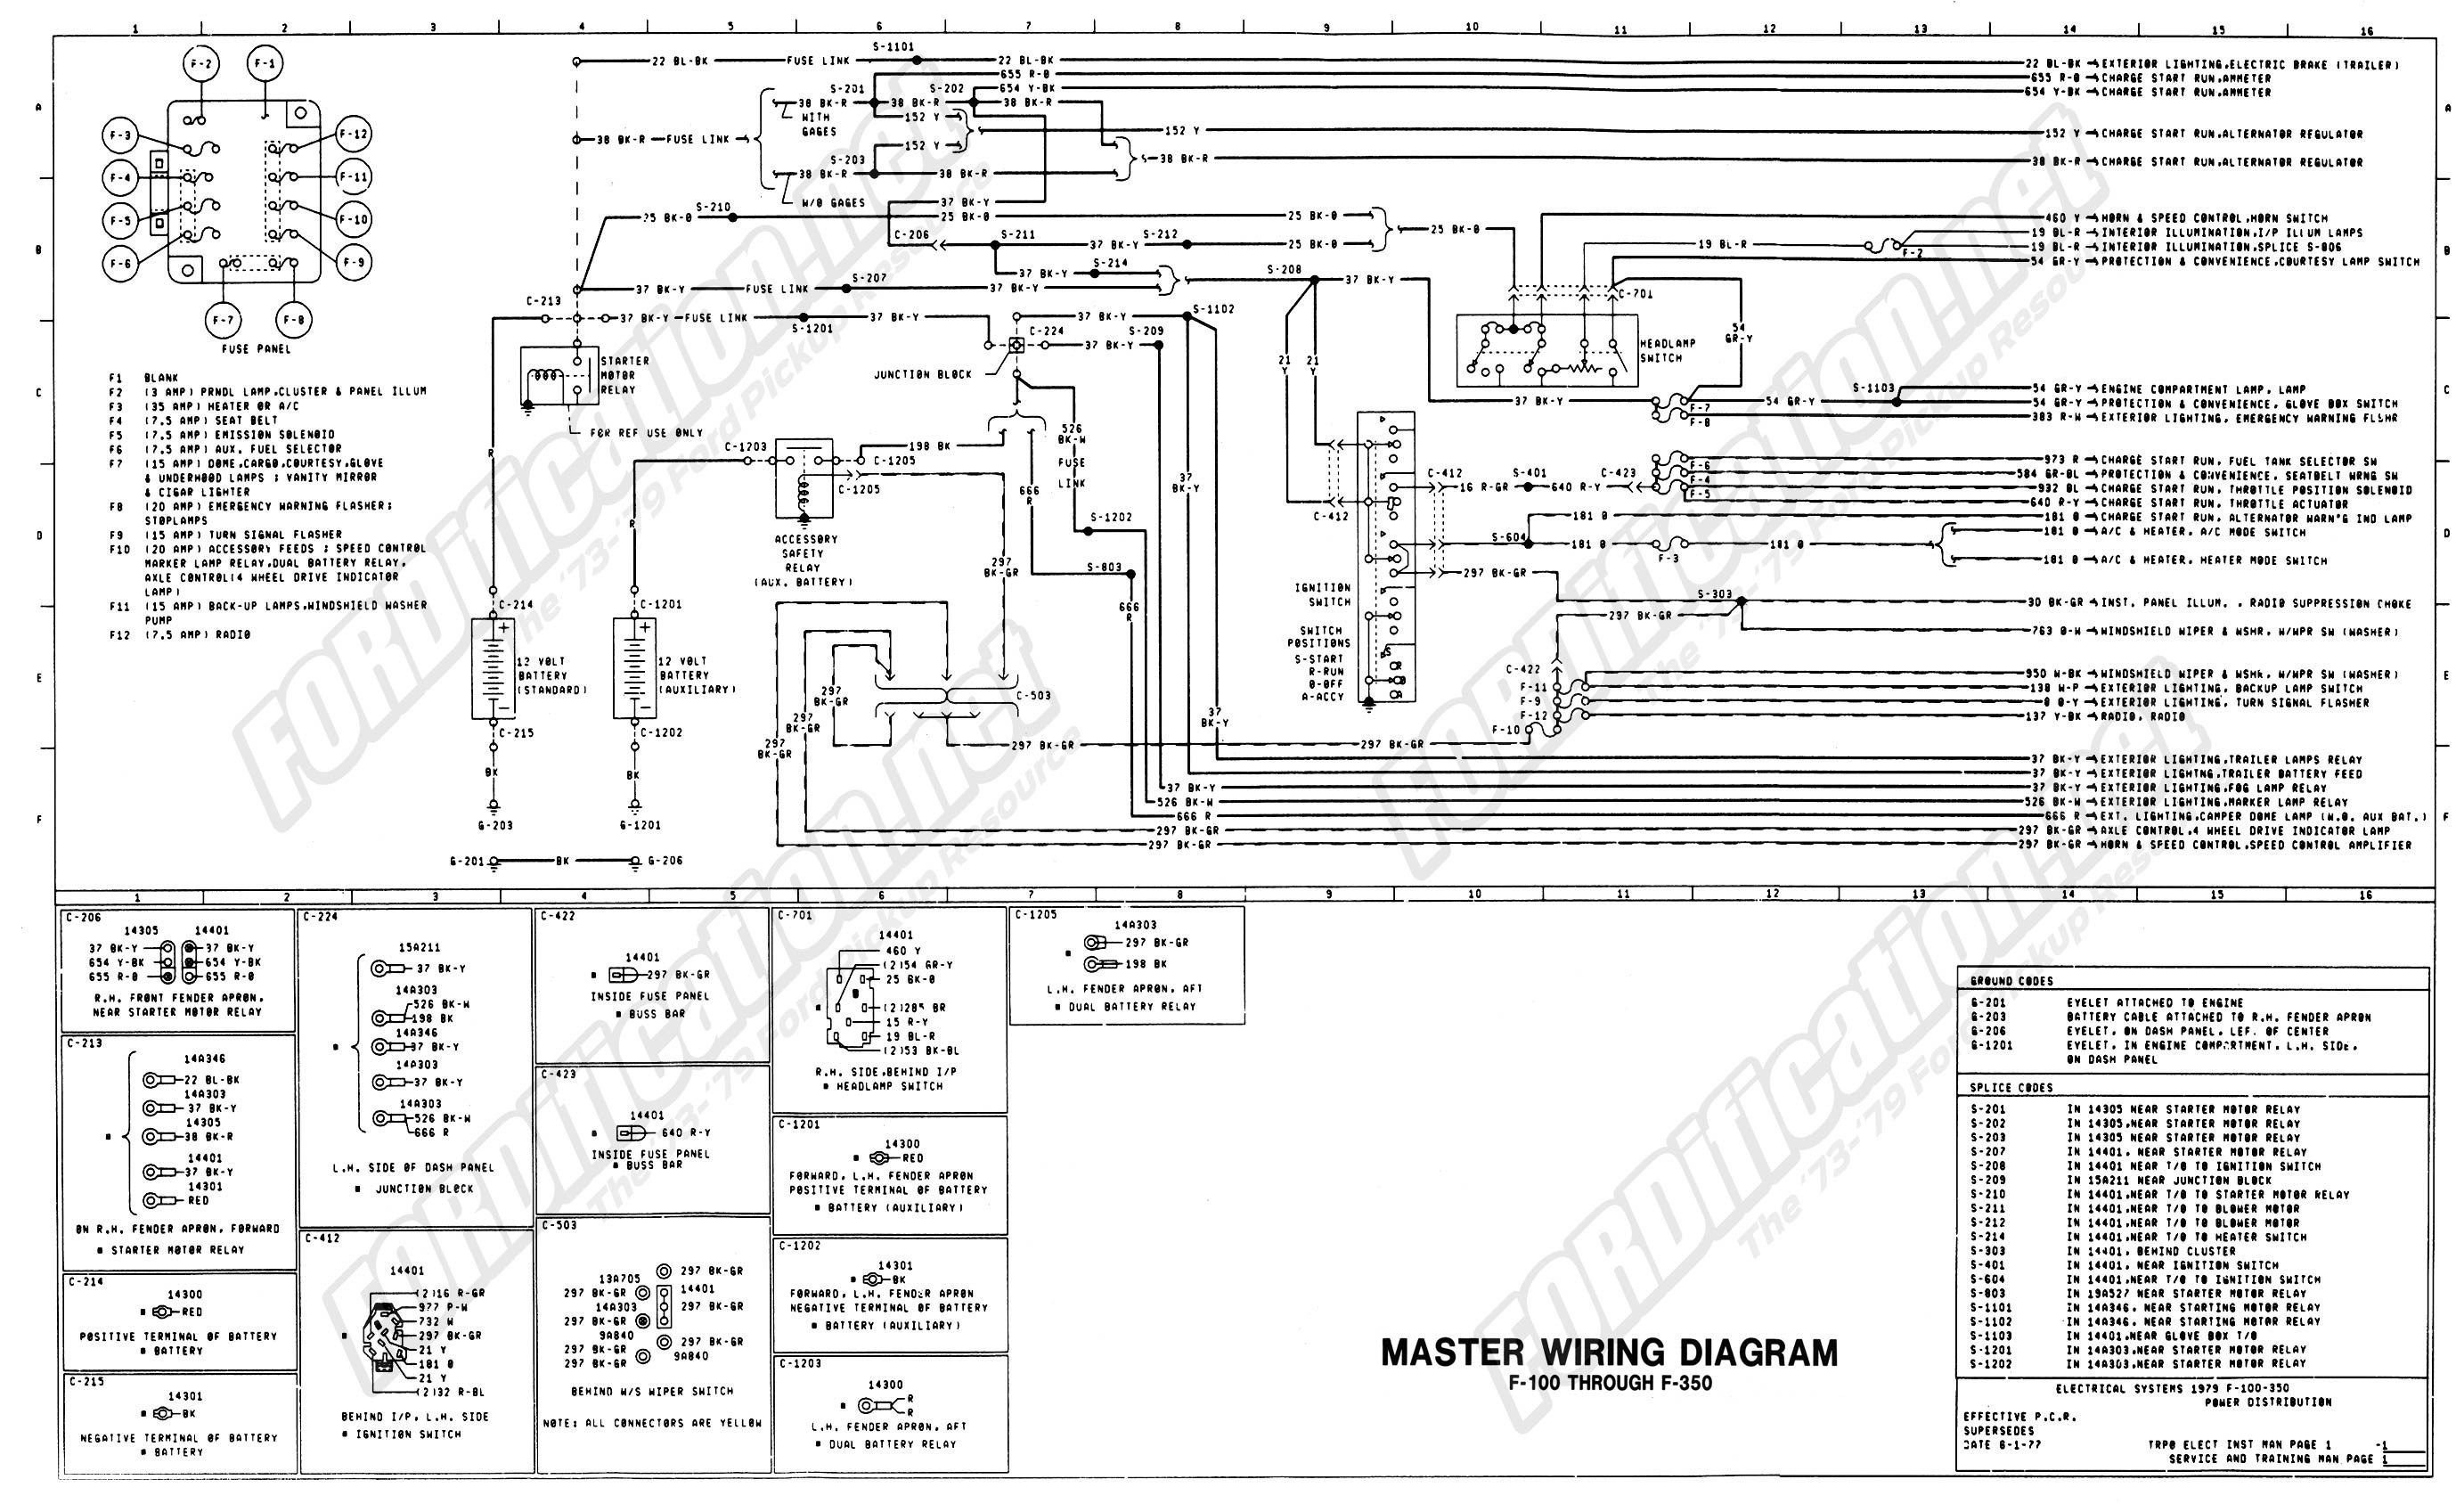 Motrec Wiring Diagram Data Schematics Motec Mack Air Ke Online Rh Delvato Co Distributors E 276